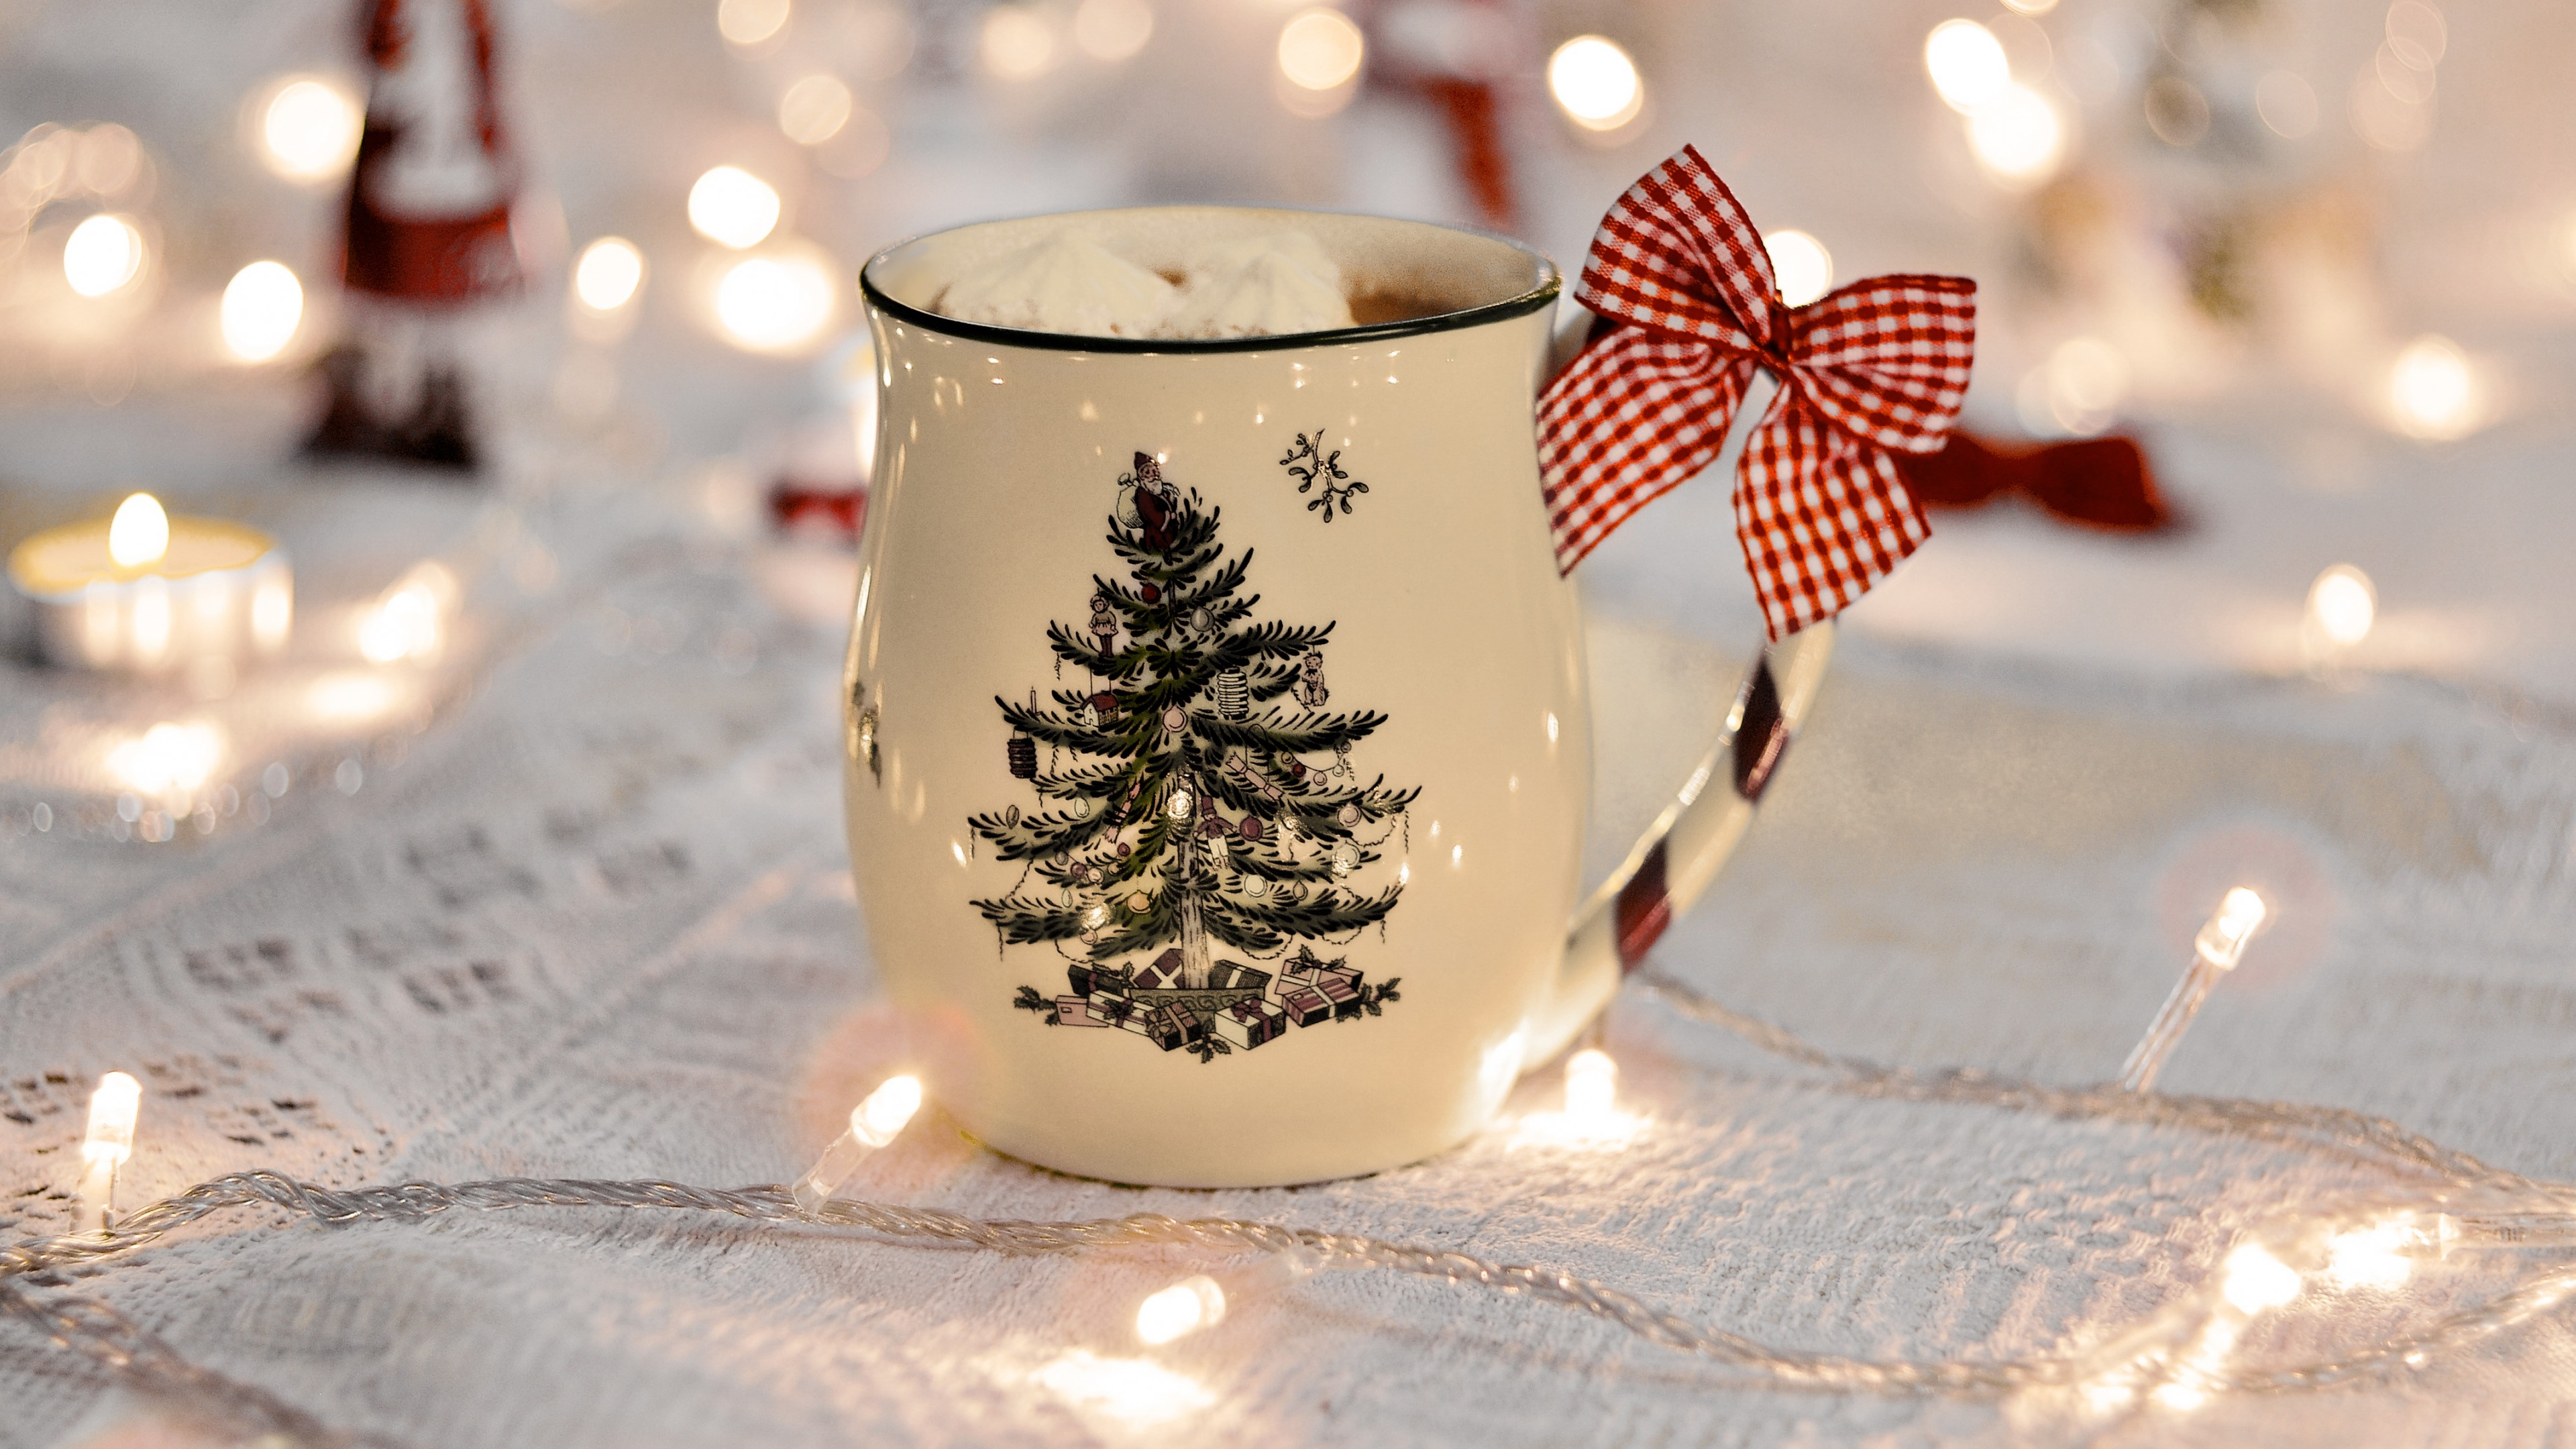 Wallpaper Christmas mug with lights